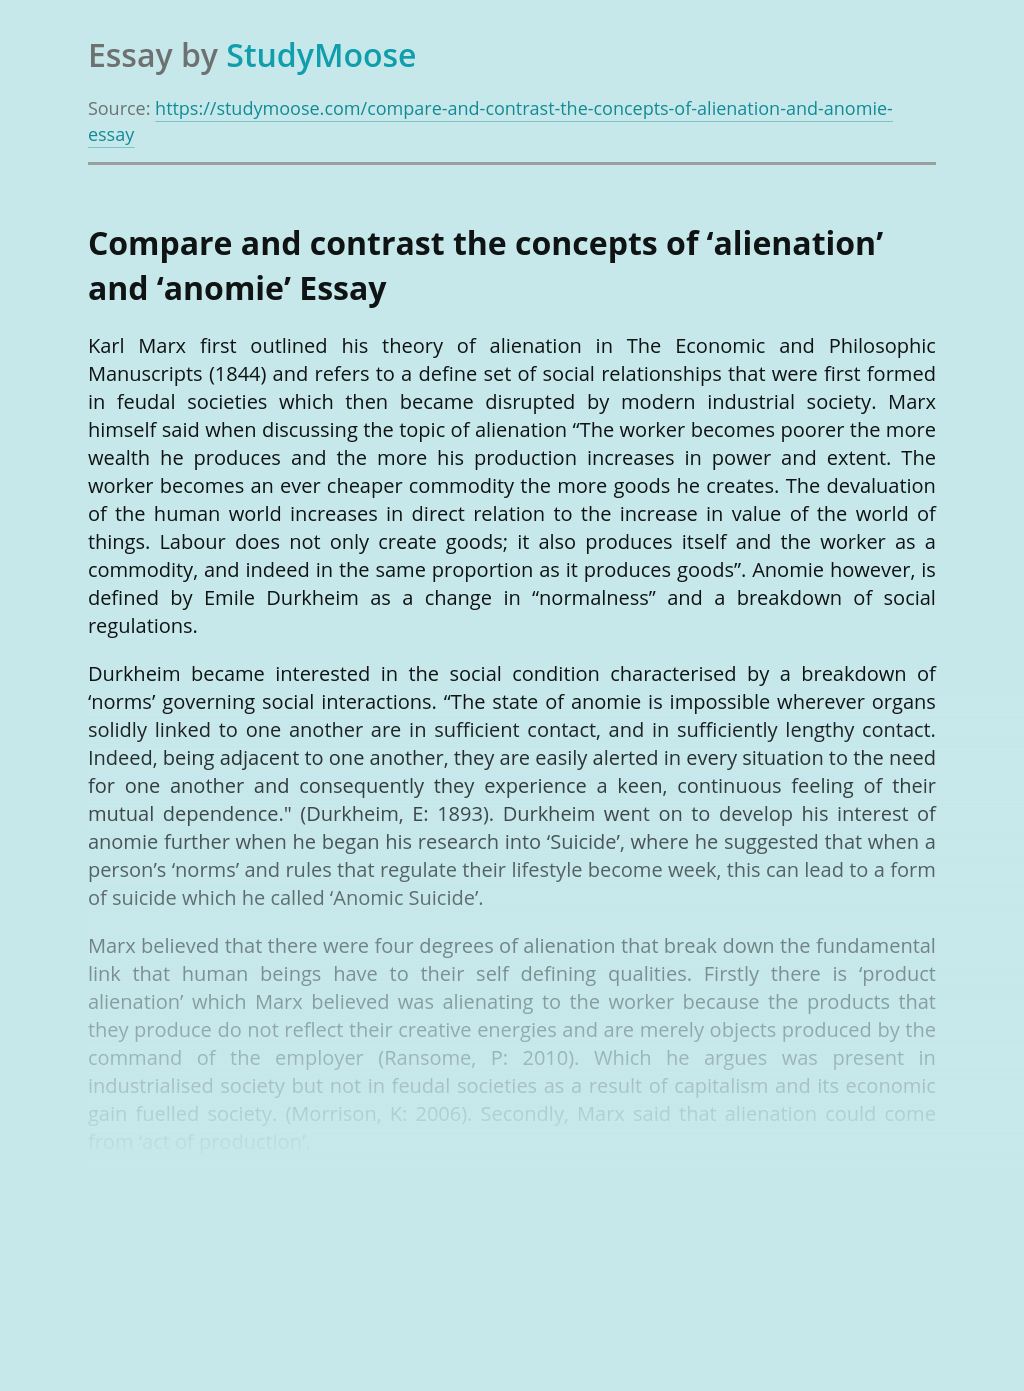 Compare and contrast the concepts of 'alienation' and 'anomie'